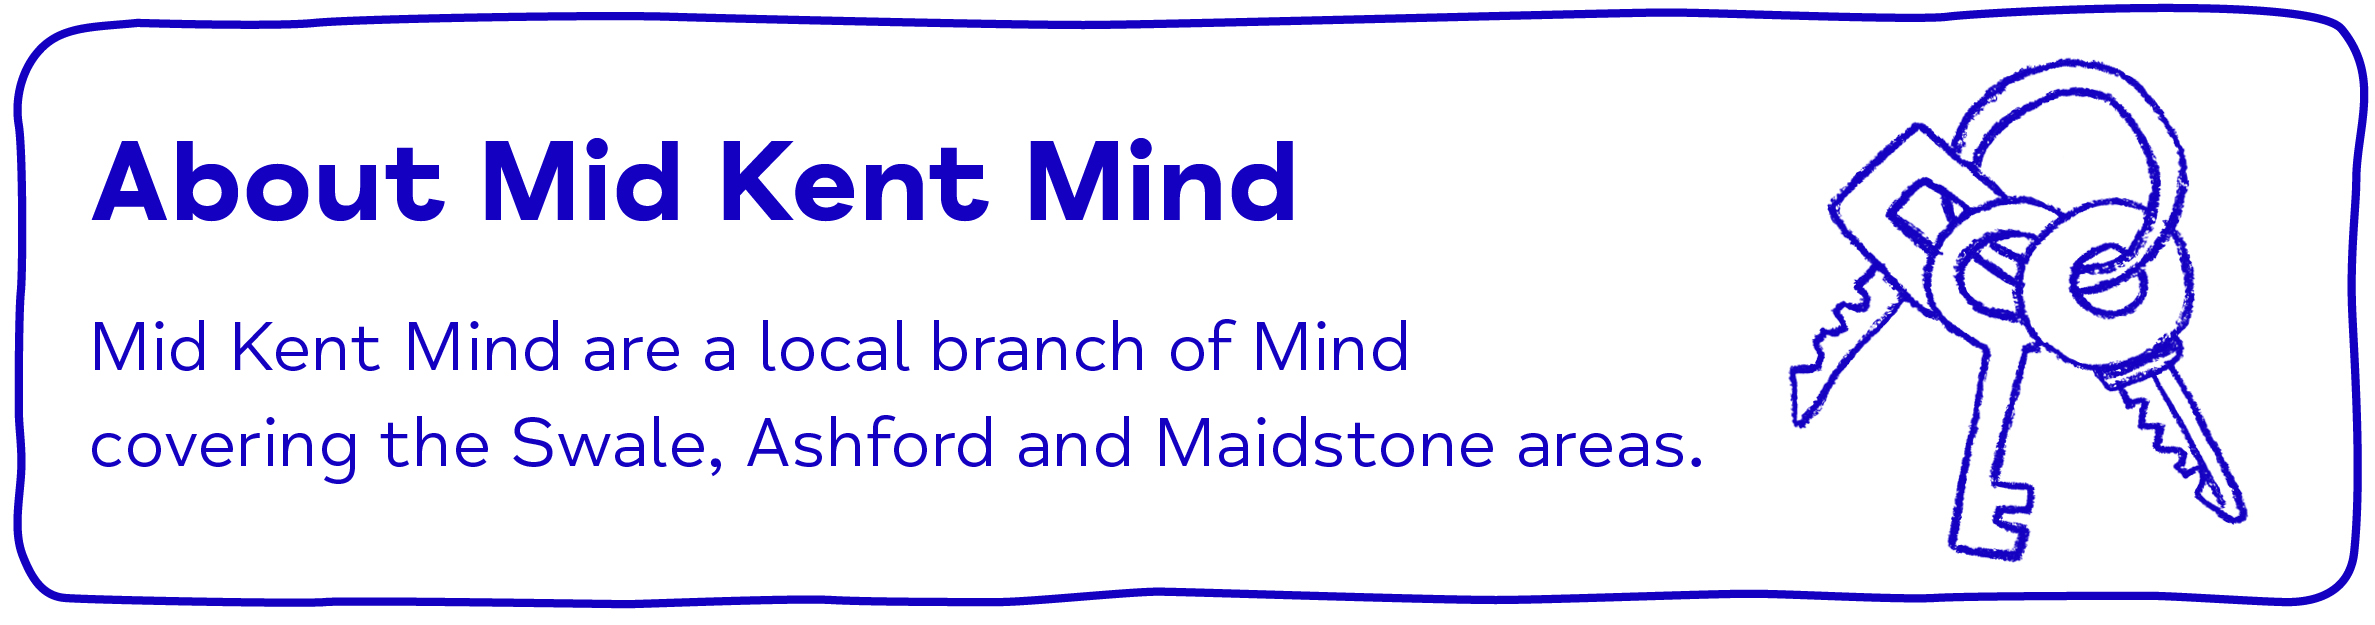 About Mid Kent Mind Mid Kent Mind are a local branch of Mind      covering the Swale, Ashford and Maidstone areas.